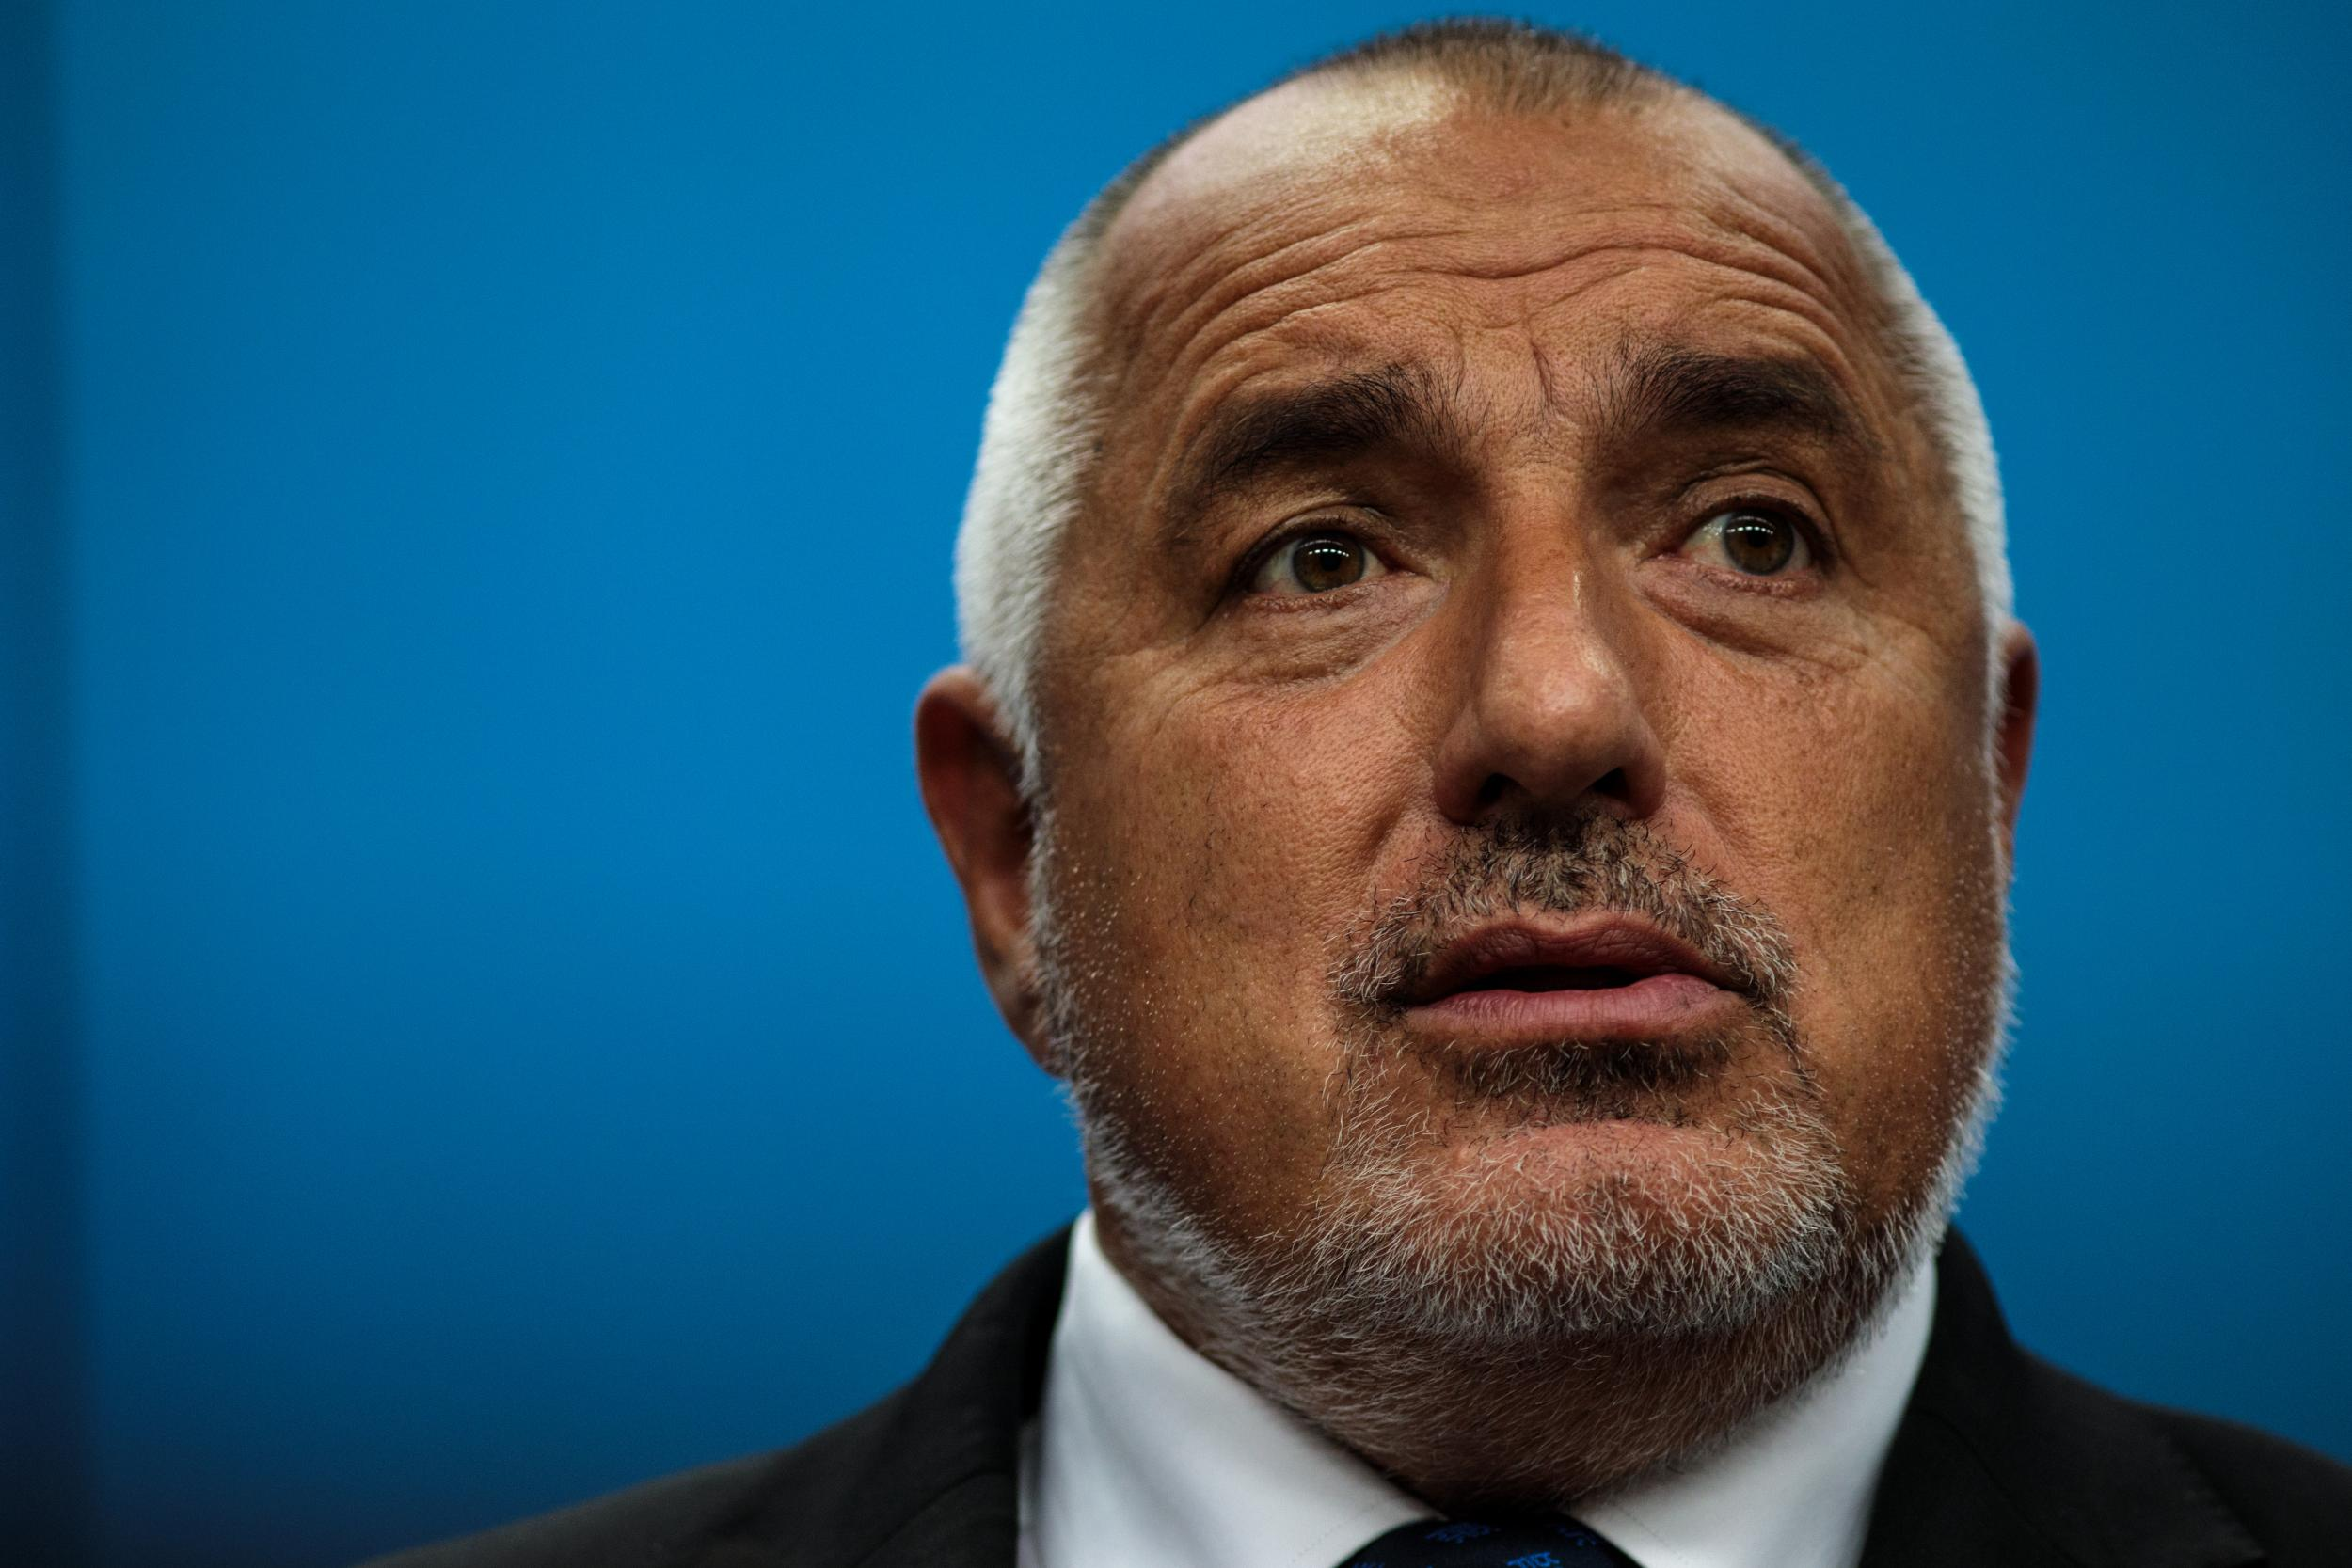 Bulgaria's PM Boyko Borissov Tests Positive For COVID-19